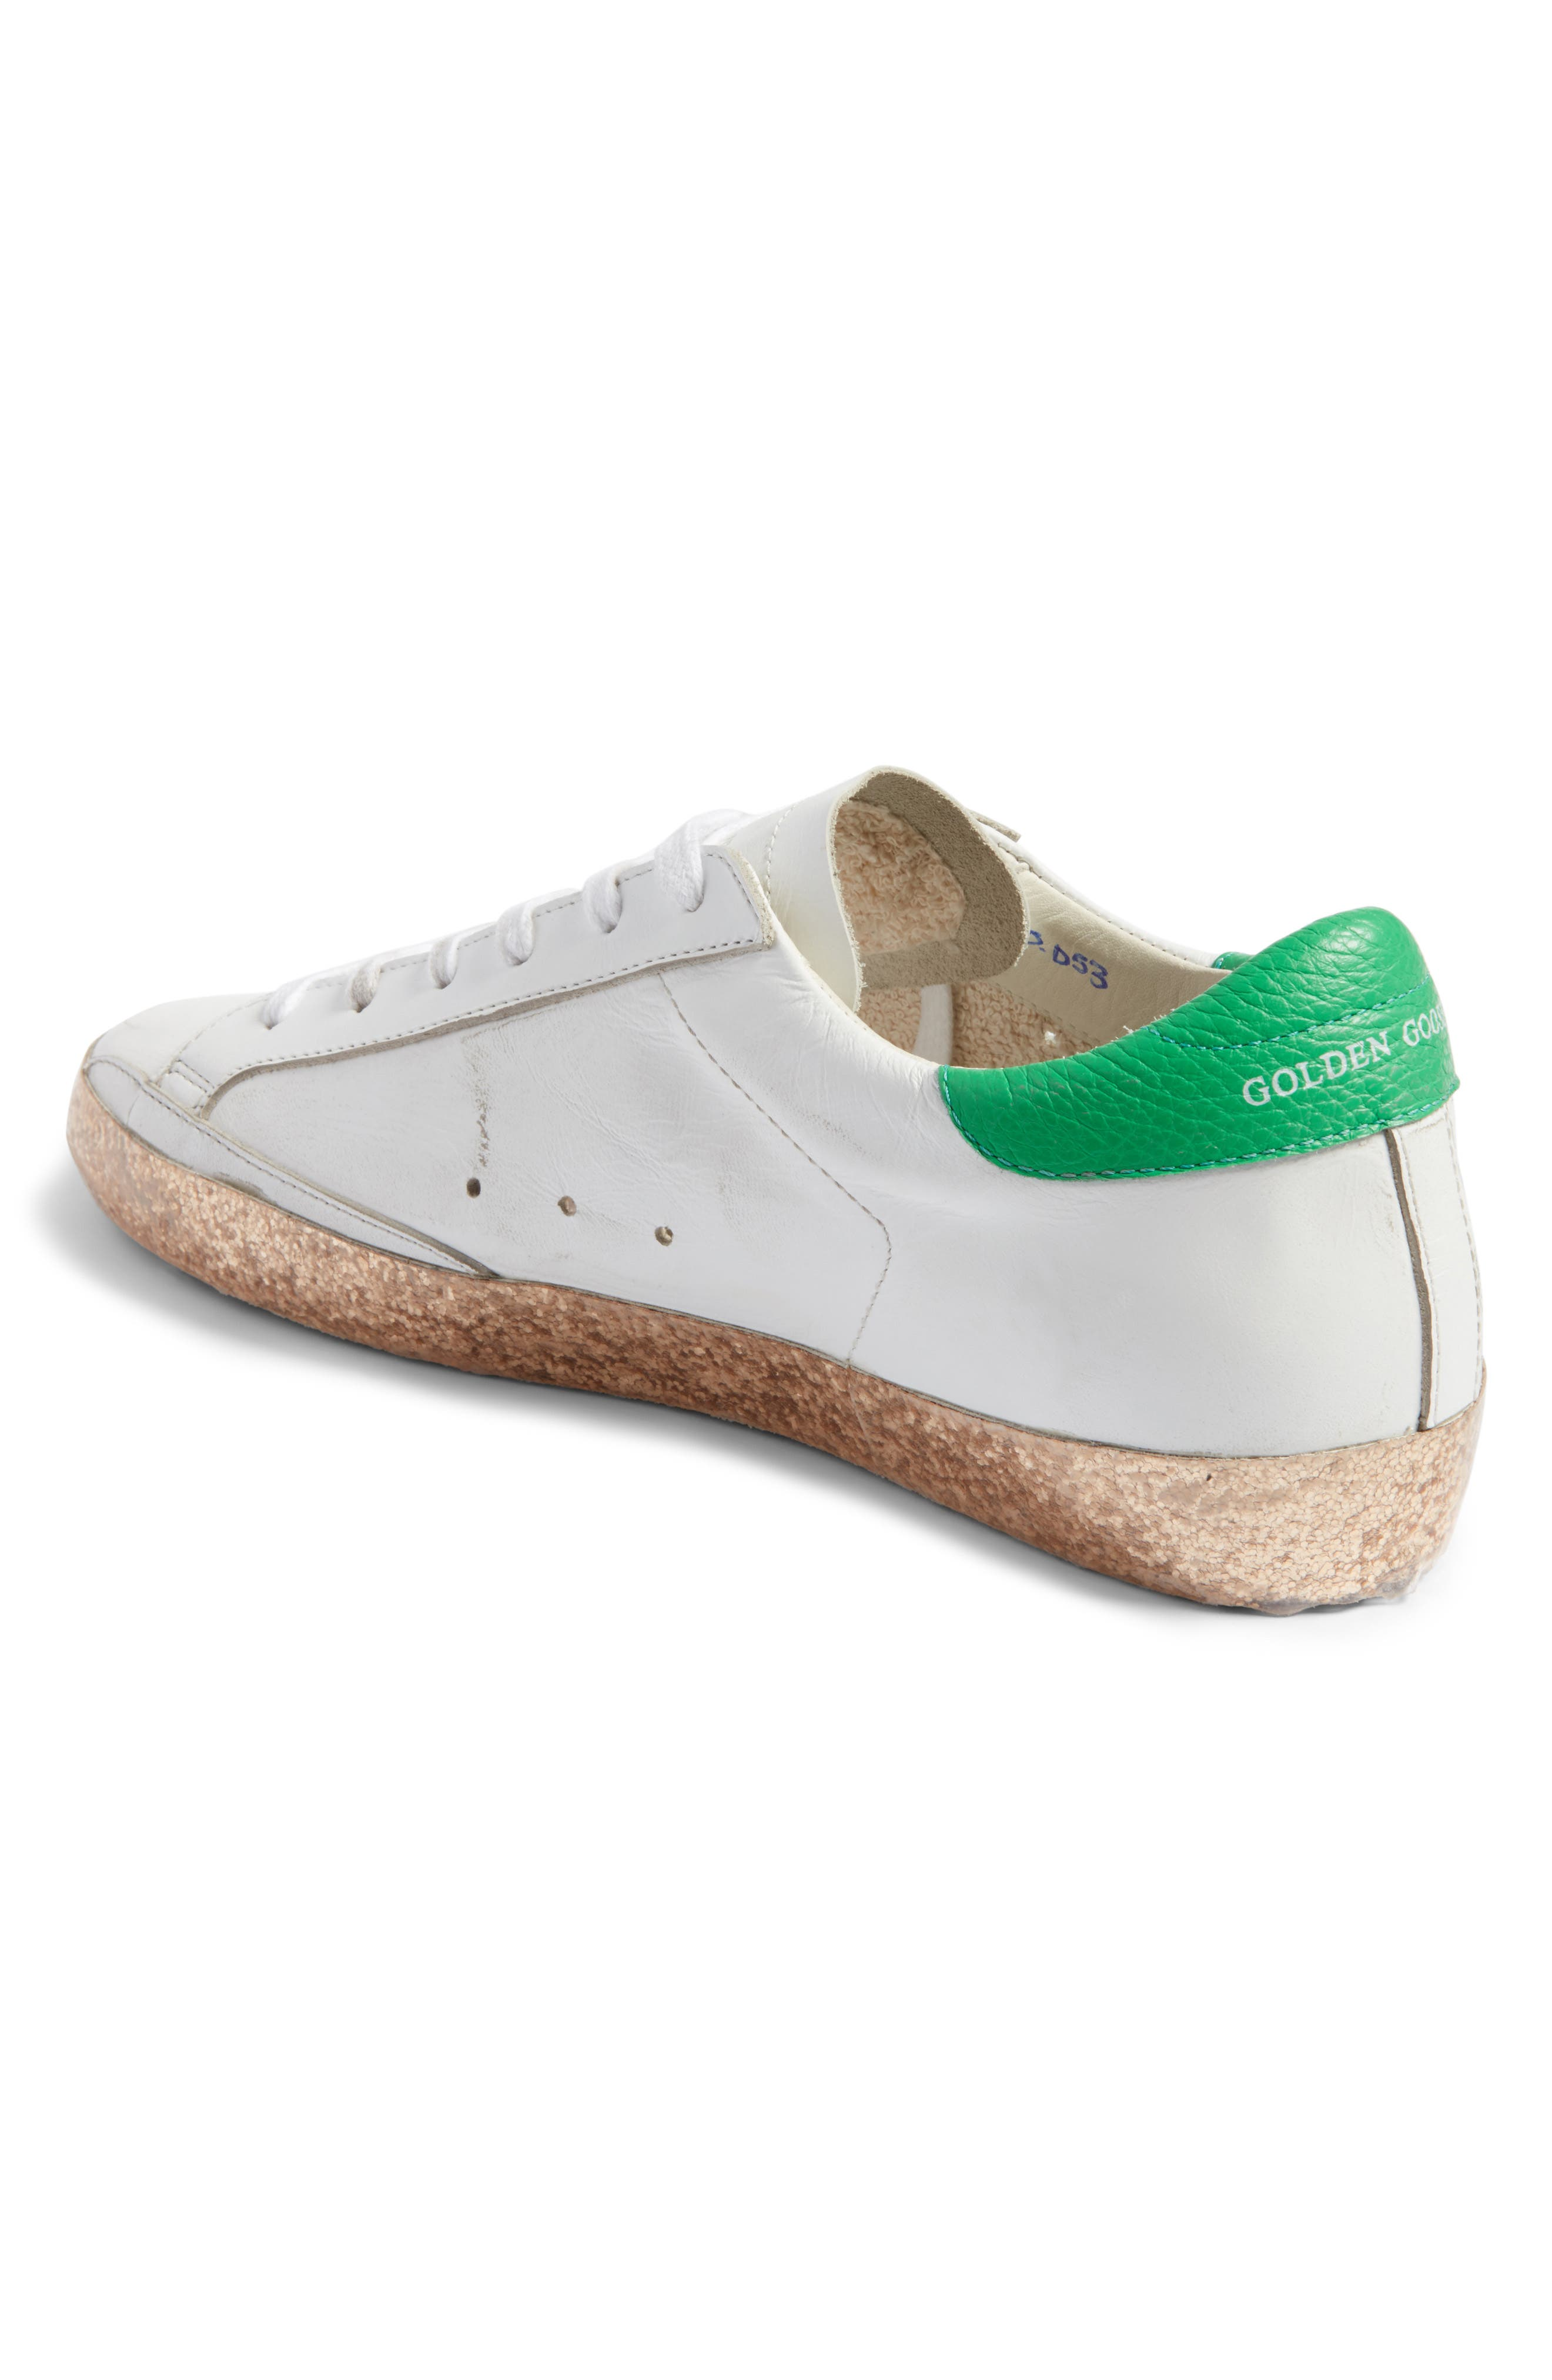 Superstar Low Top Sneaker,                             Alternate thumbnail 2, color,                             White Leather/ Gold